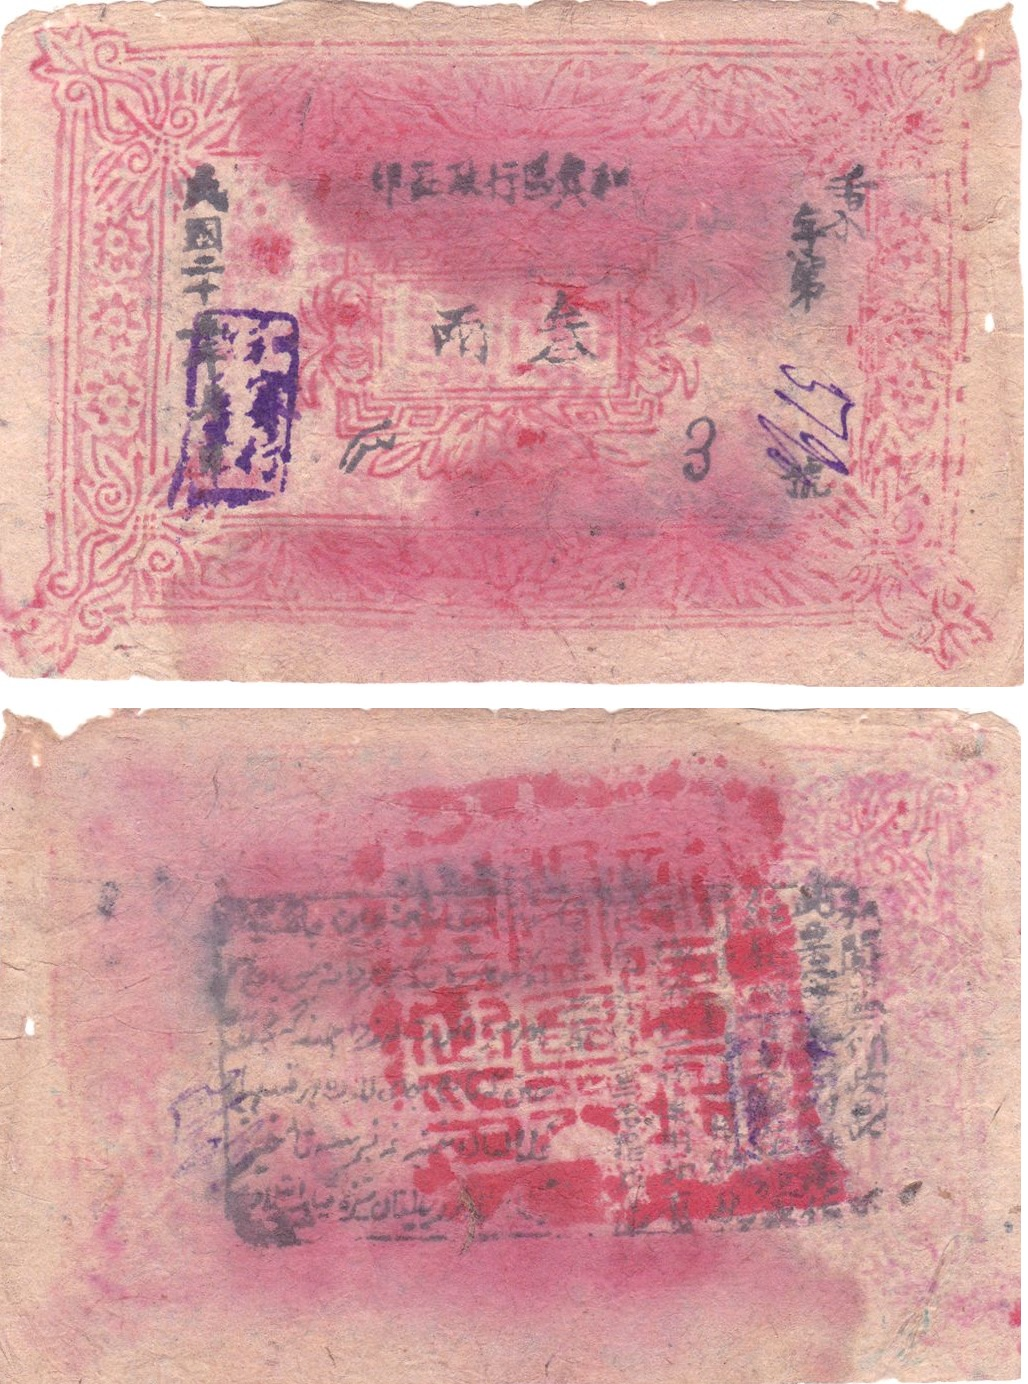 XJ0001, Xingjiang Hotan(Khotan) District, 3 Tael Banknote 1930's (Ma Hushan Notes)